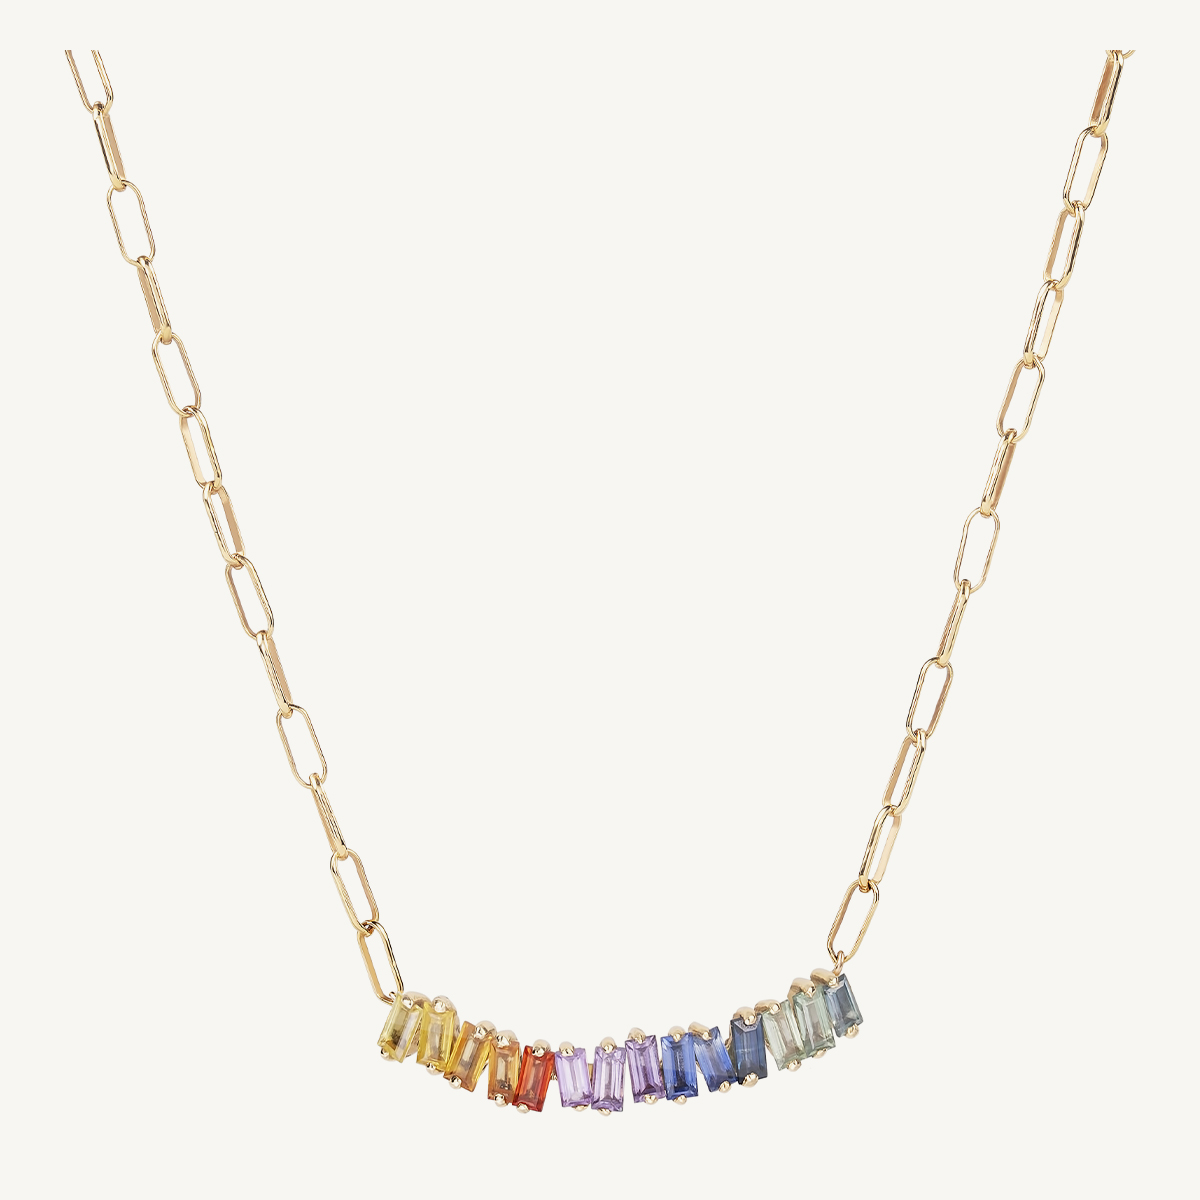 Necklace Chasing Rainbows